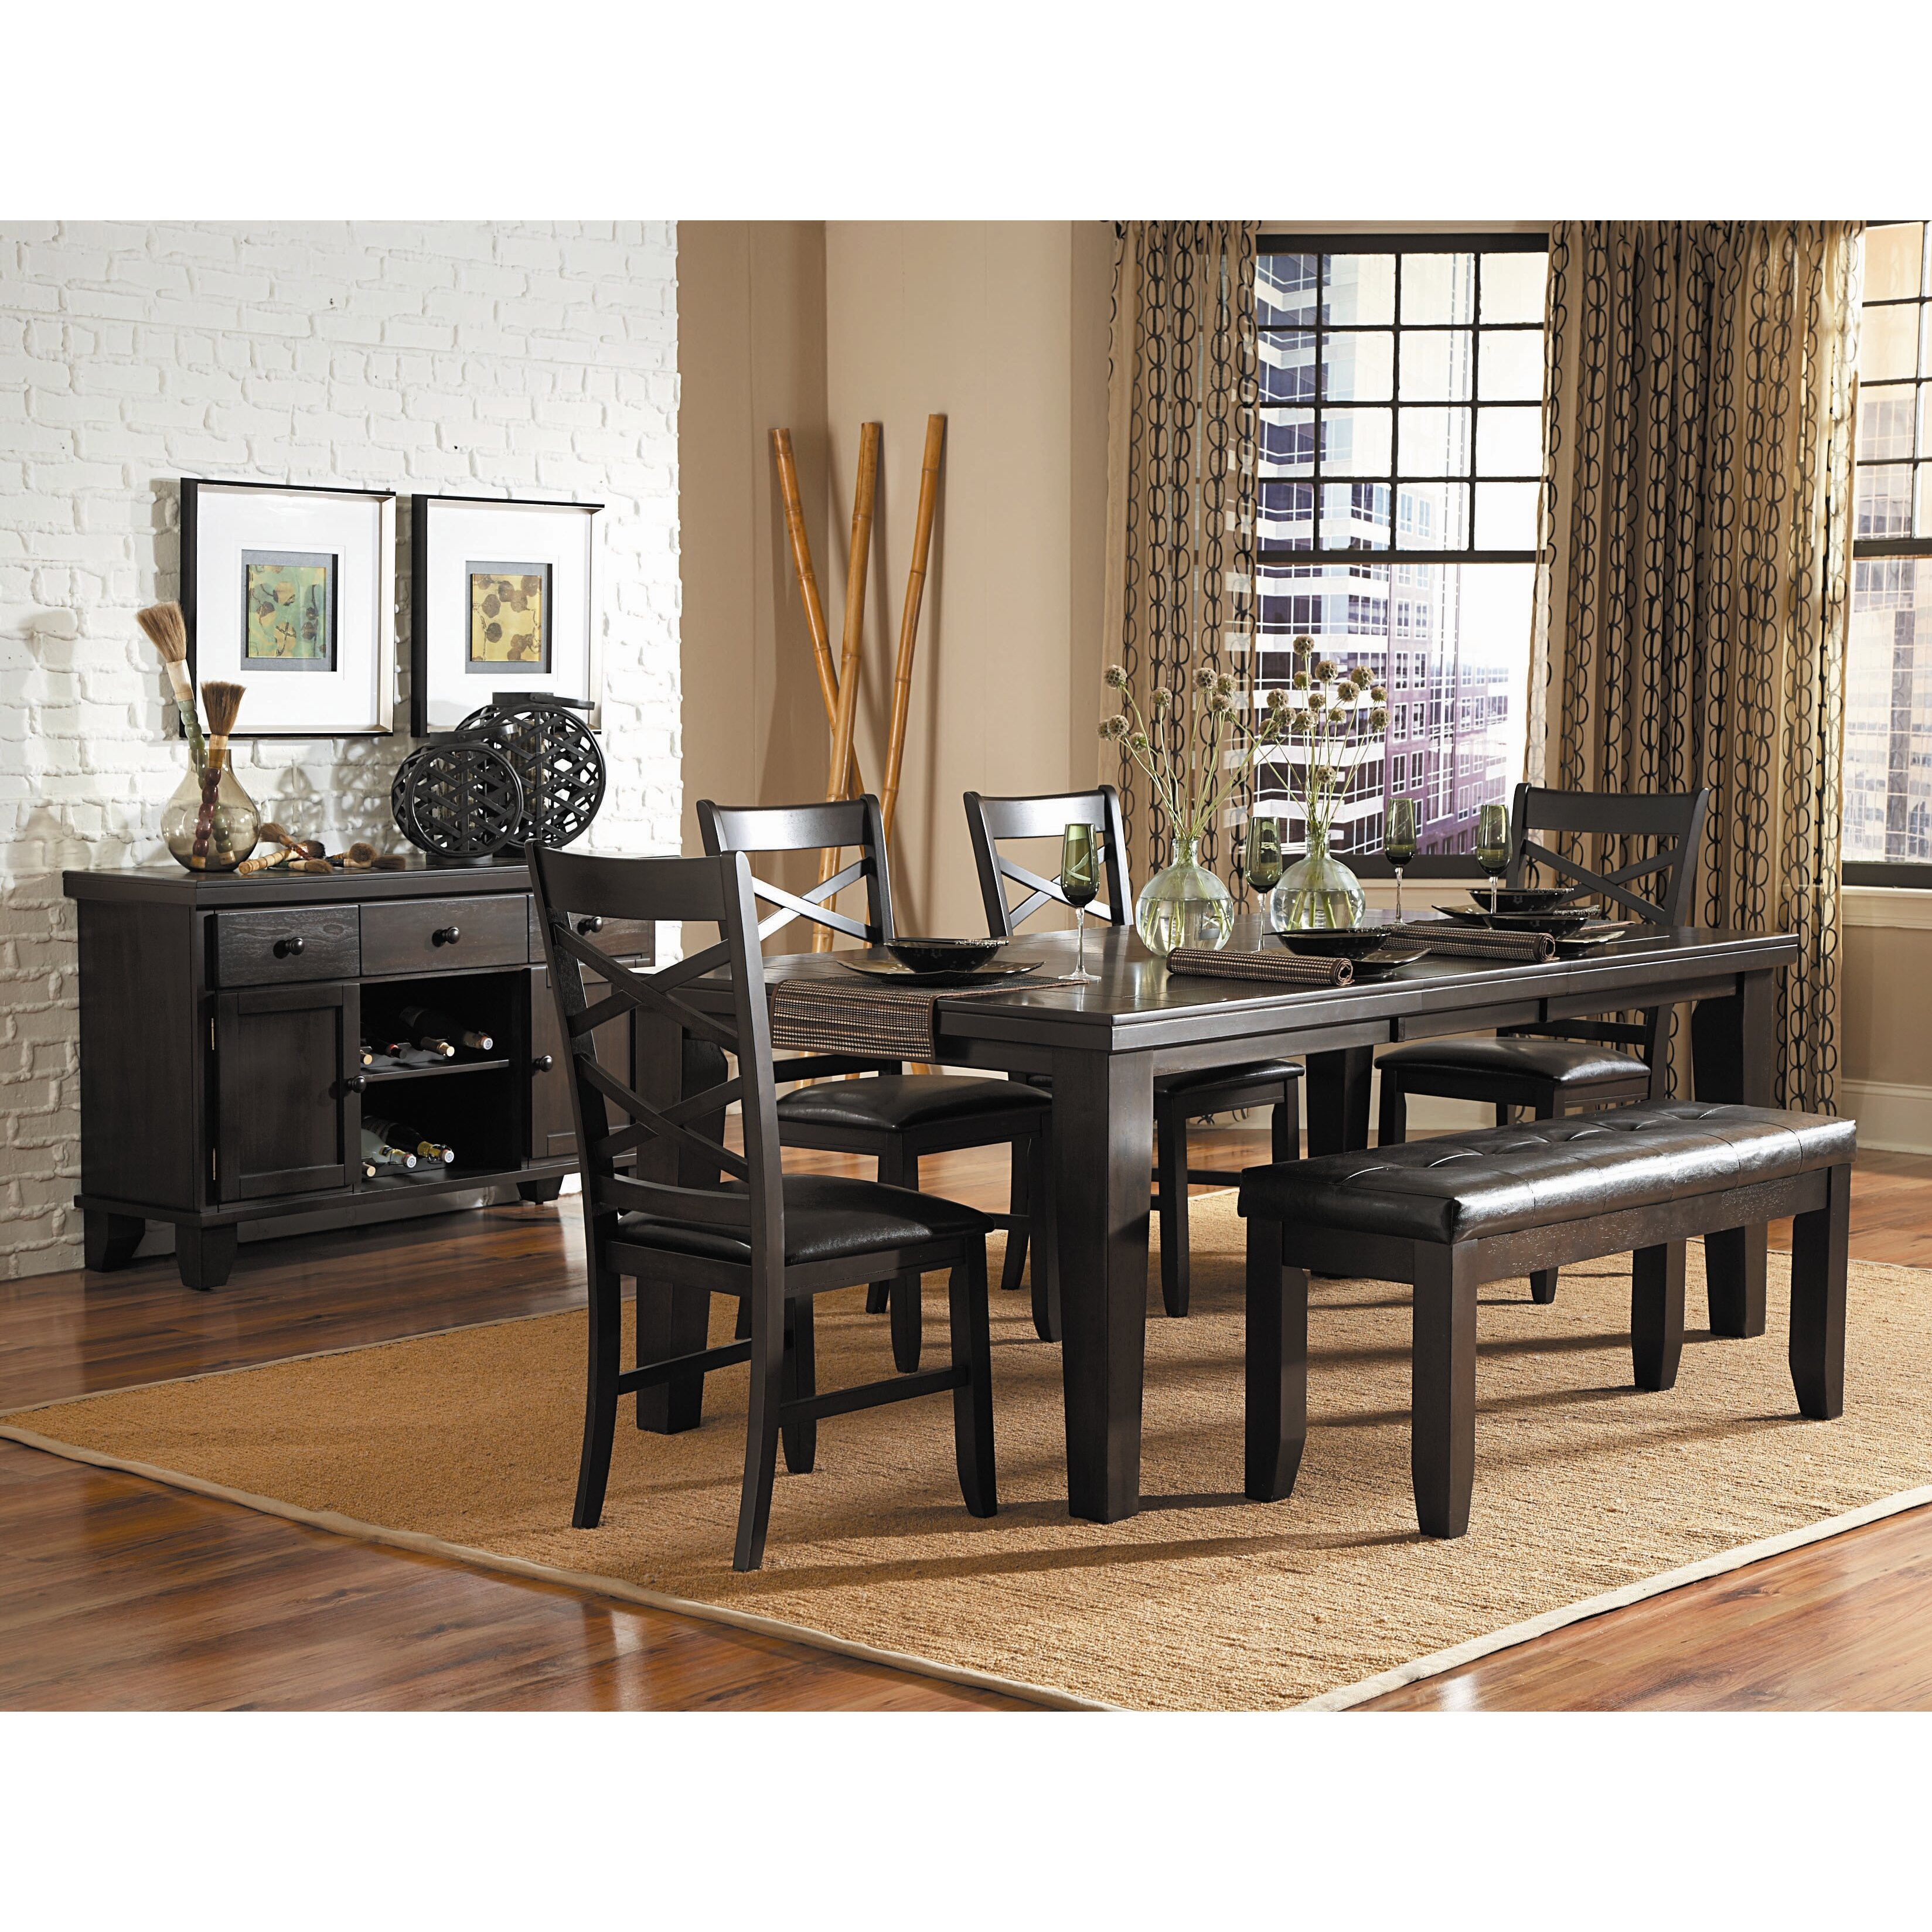 Woodhaven Living Room Furniture Woodhaven Hill Hawn 6 Piece Dining Set Reviews Wayfair